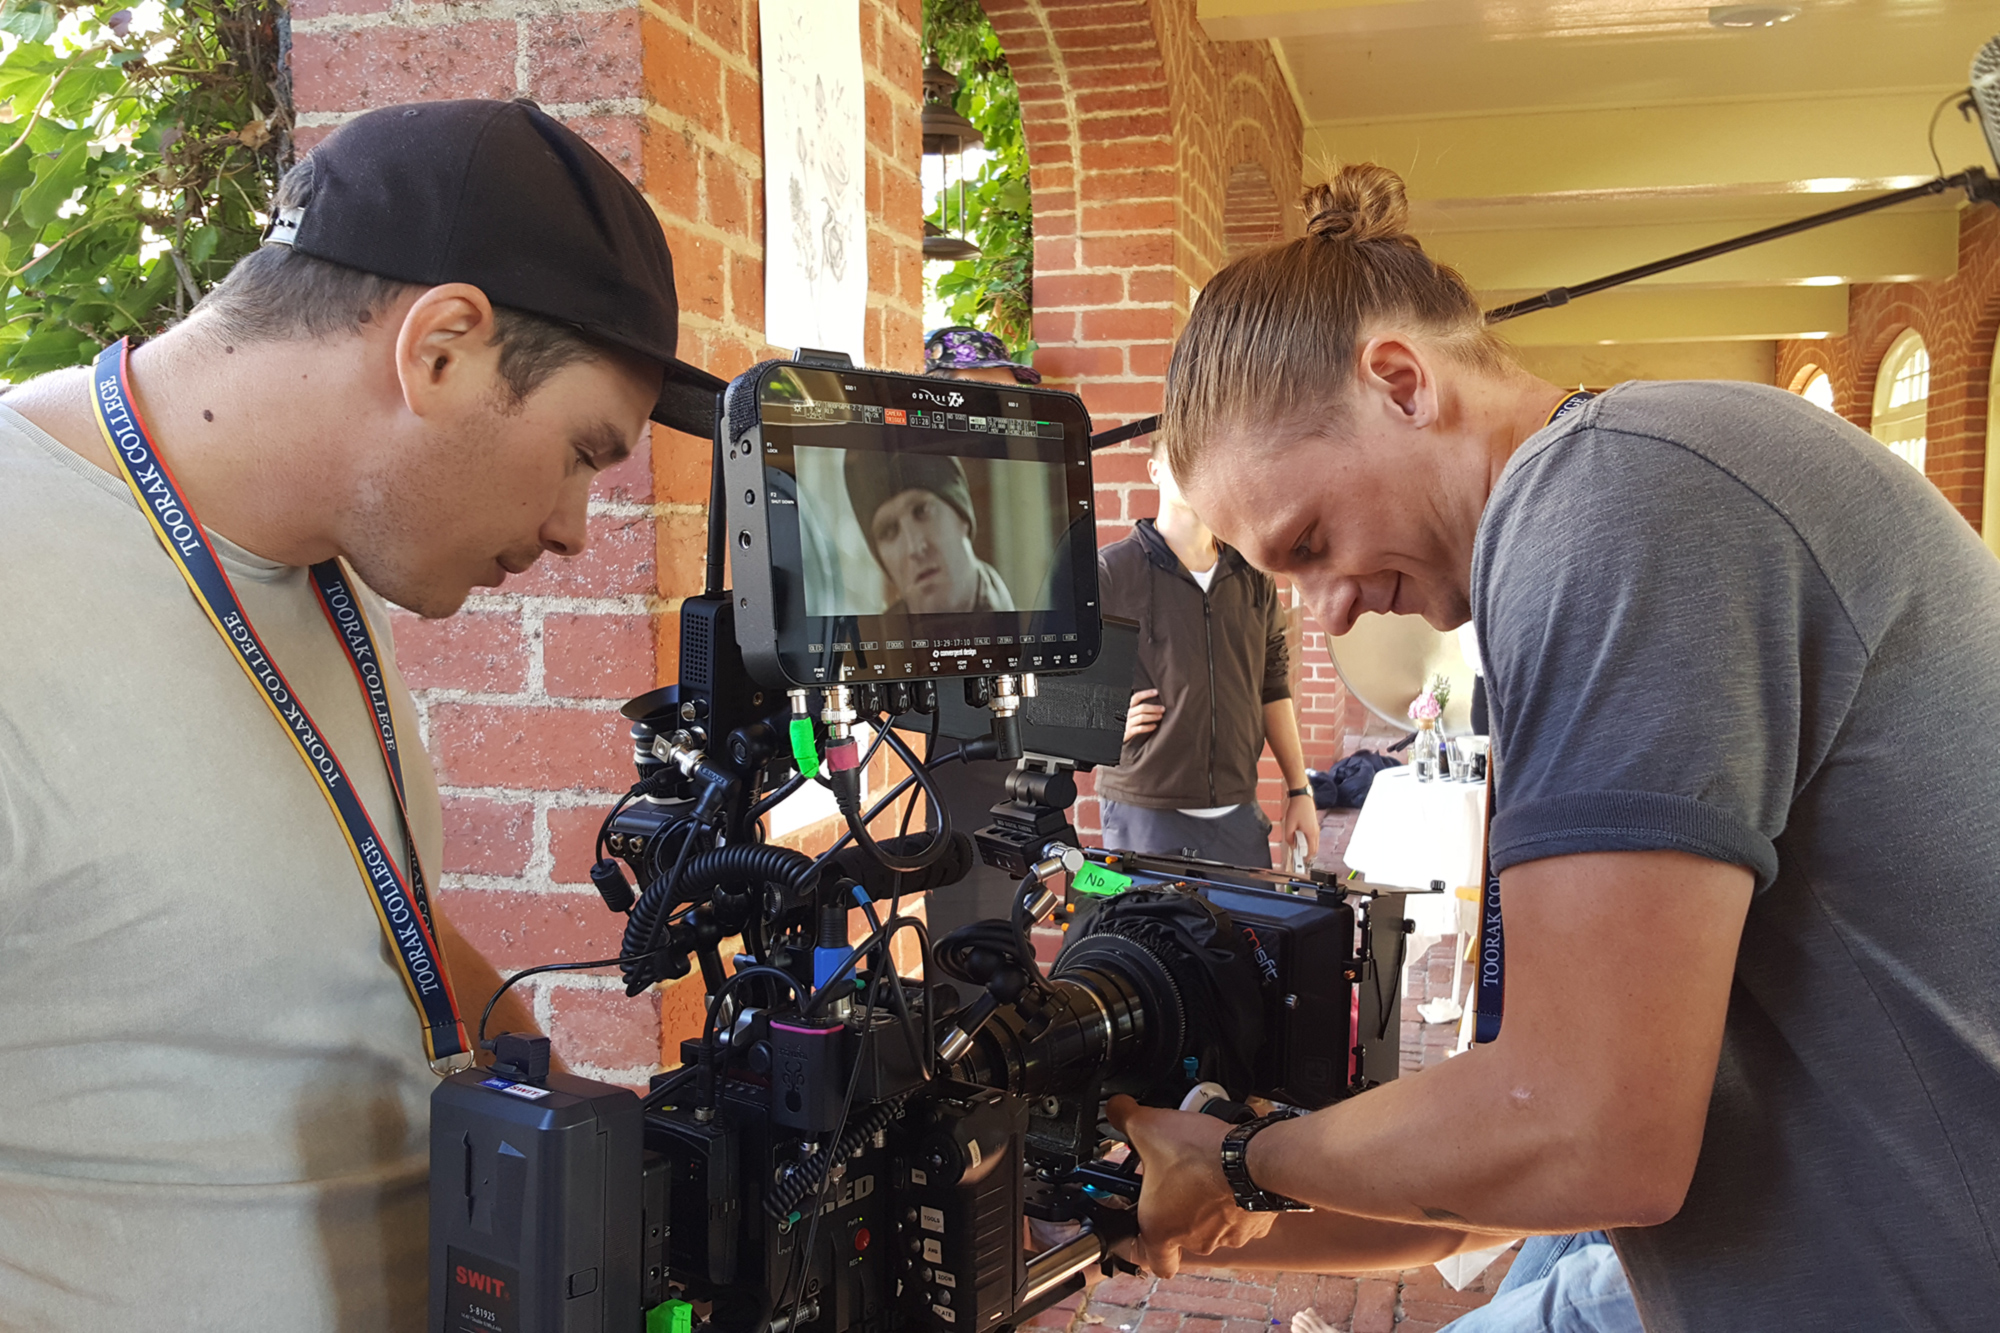 Cinematographer Shaun Herbertson with 1st Camera Assist, Marcus Cropp, set up the next shot